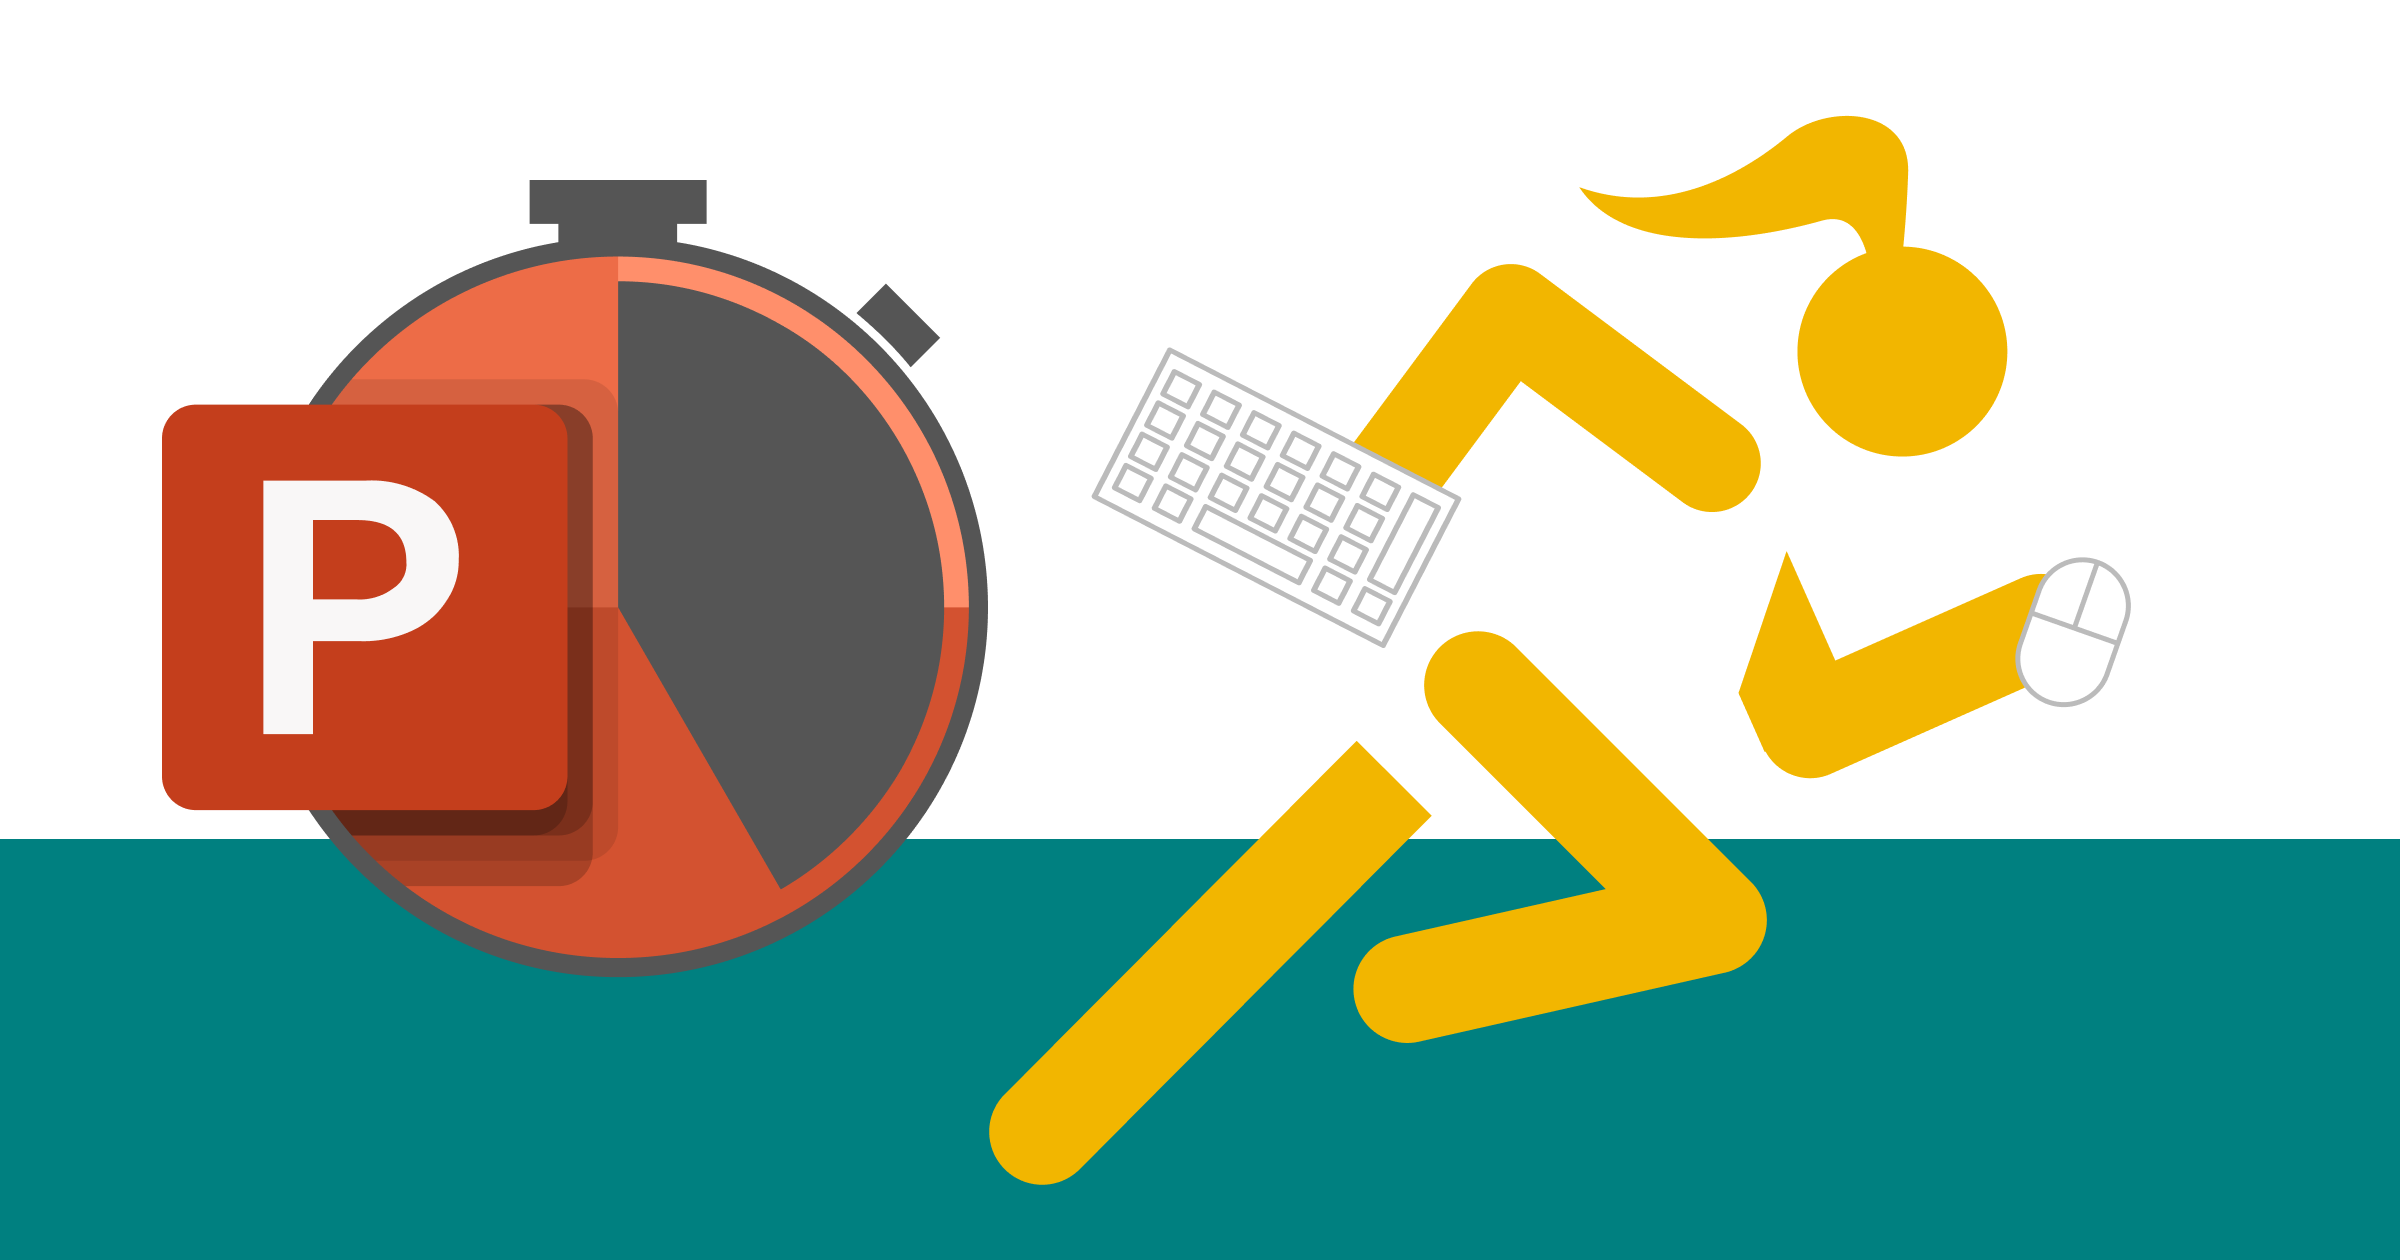 A stylised image showing the PowerPoint application icon as a stopwatch and an athlete sprinting with a keyboard in one hand and a mouse in the other